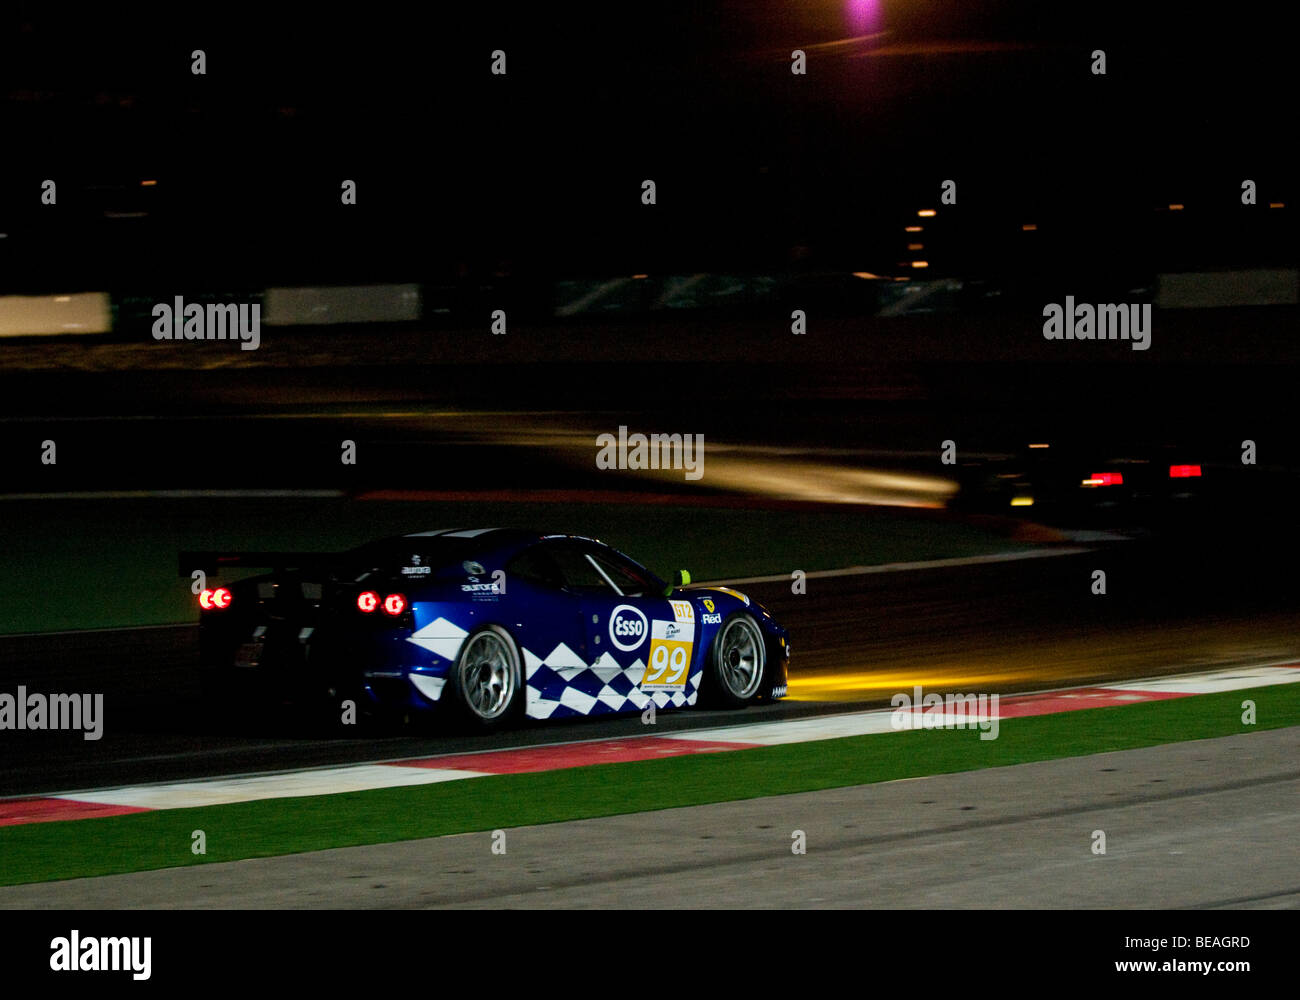 The Le Mans Series 1000km of the Algarve taking place during the night at the Autódromo Internacional do Algarve, Stock Photo